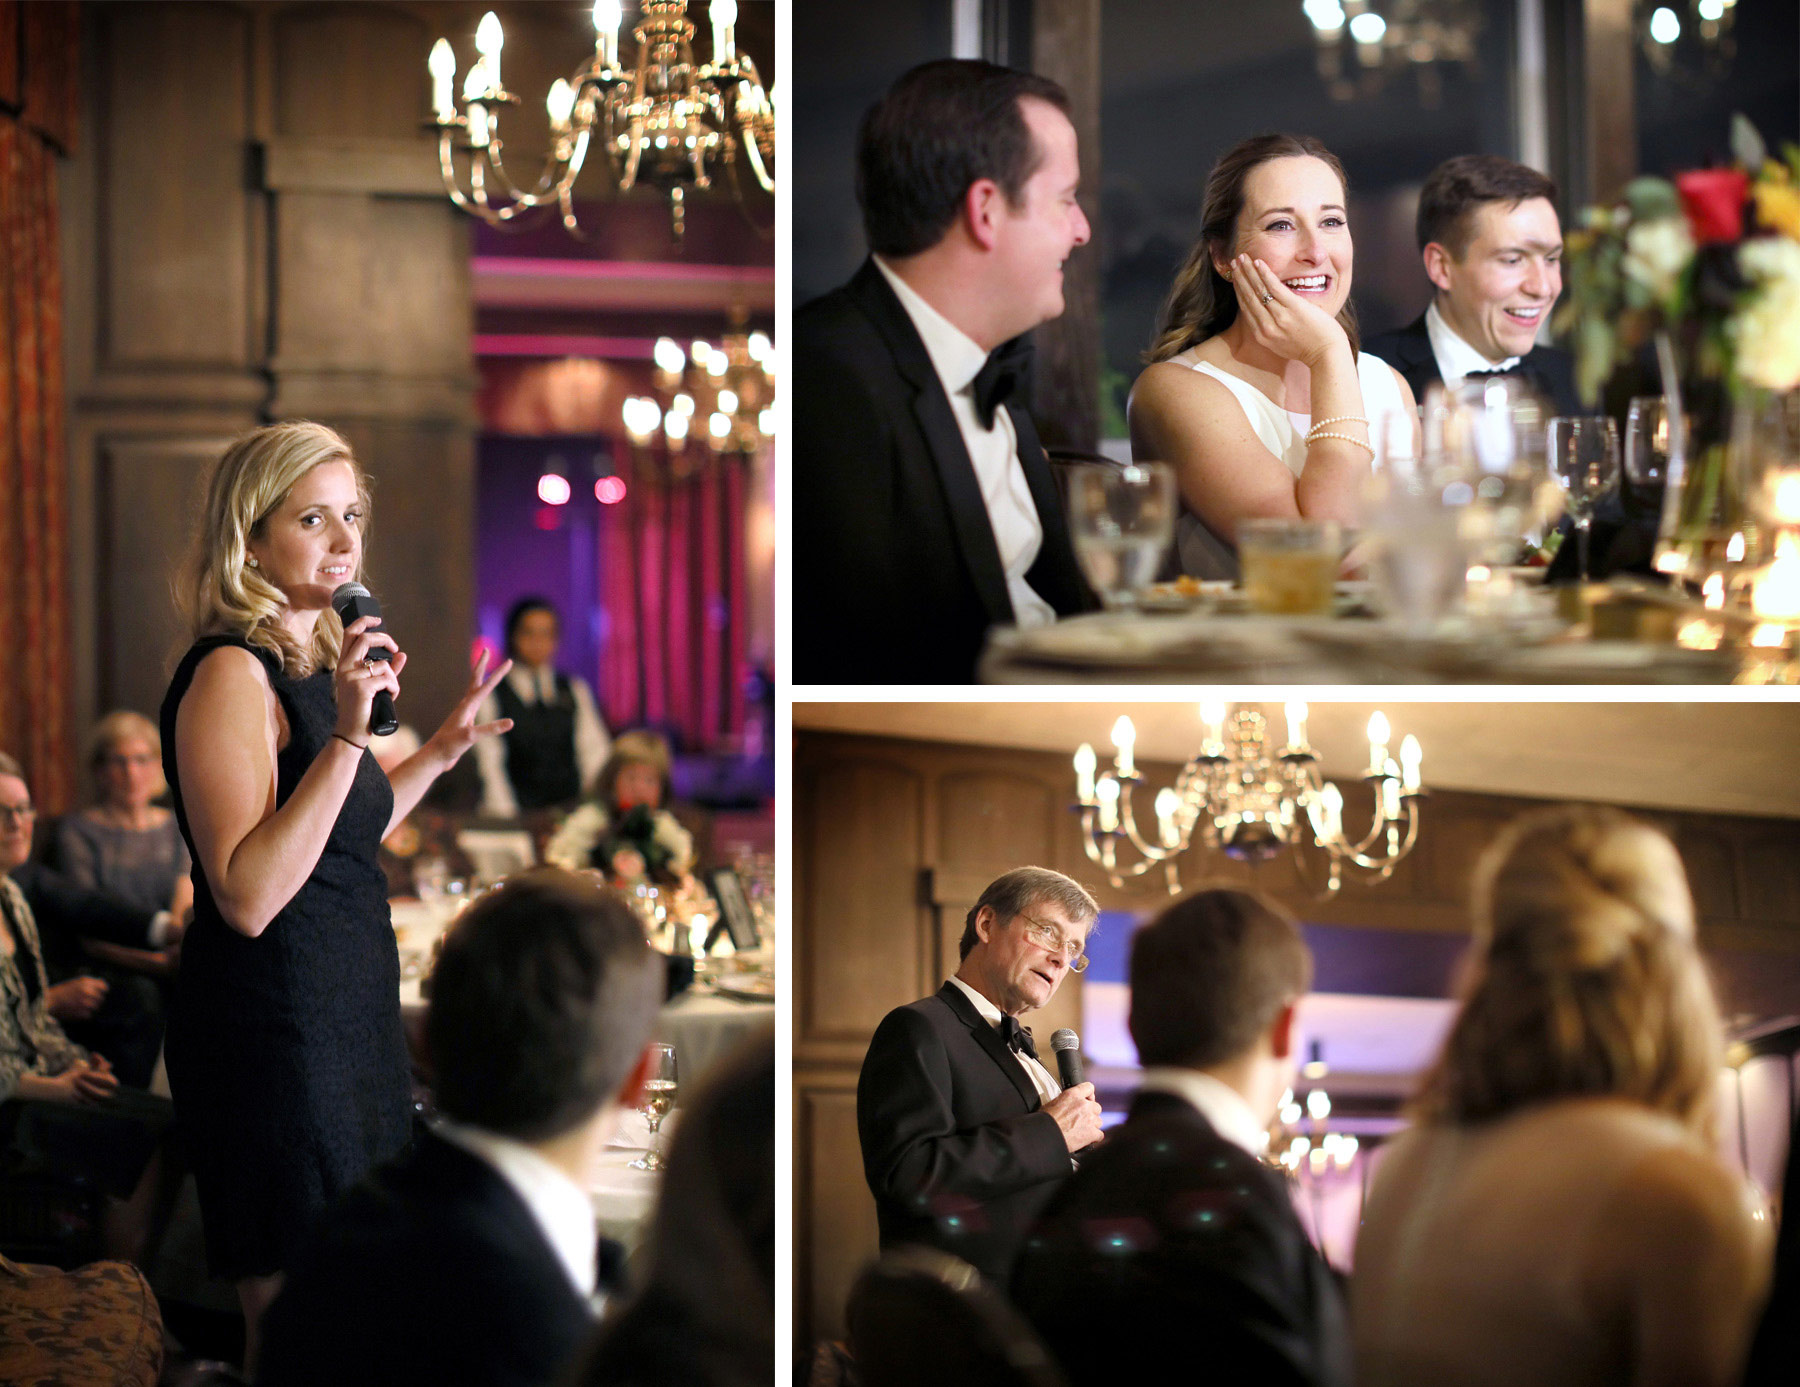 18-Saint-Paul-Minnesota-Wedding-Photographer-by-Andrew-Vick-Photography-Fall-Autumn-Town-and-Country-Club-Reception-Bride-Groom-Father-Parents-Bridesmaids-Speeches-Kathryn-and-Sam.jpg